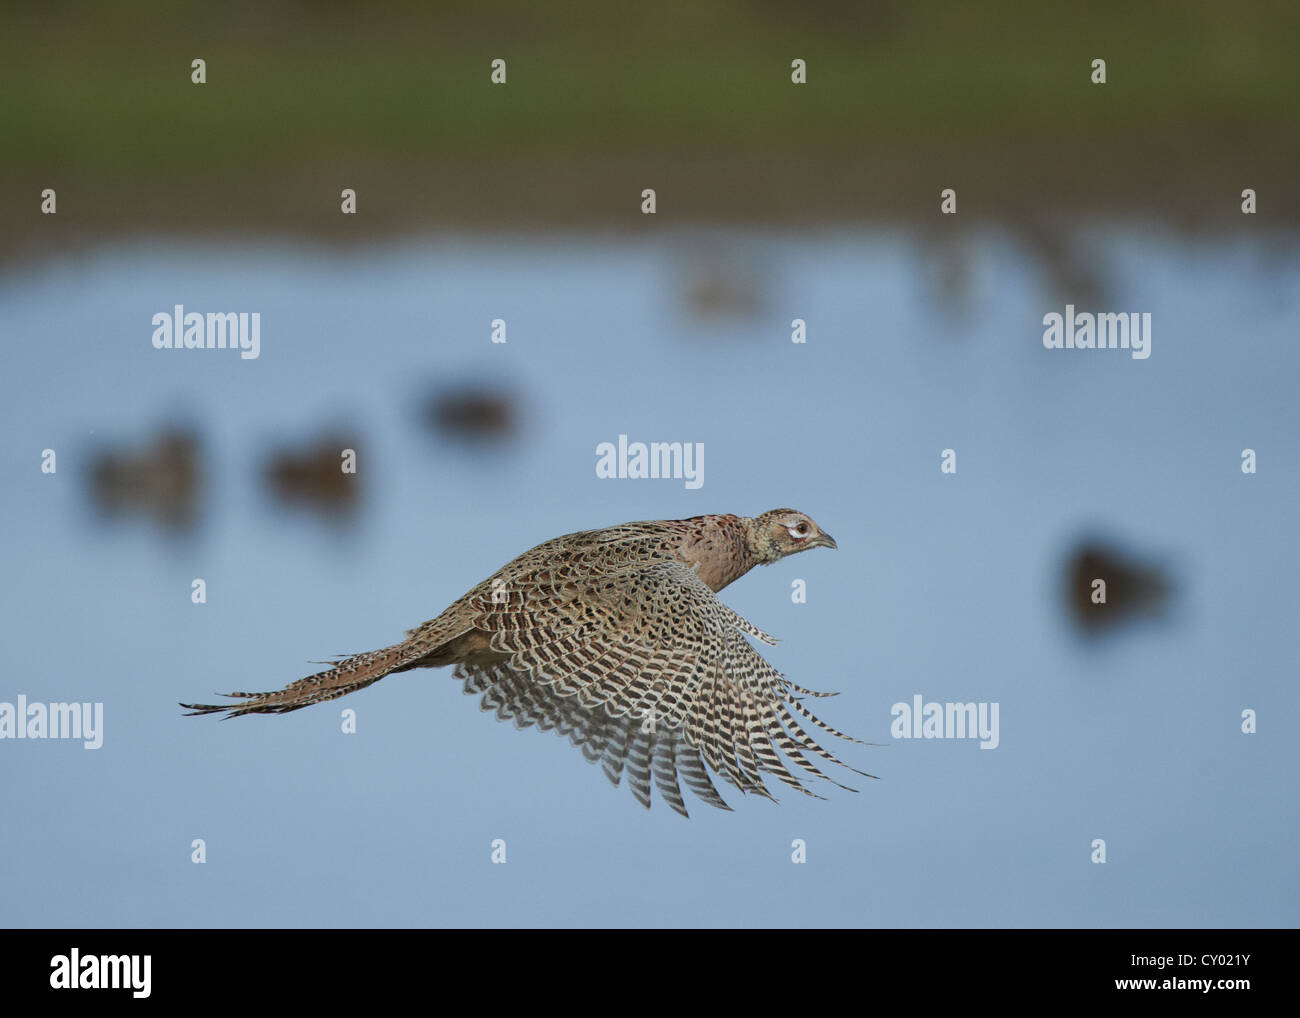 Flying Pheasant Stock Photos & Flying Pheasant Stock Images - Alamy